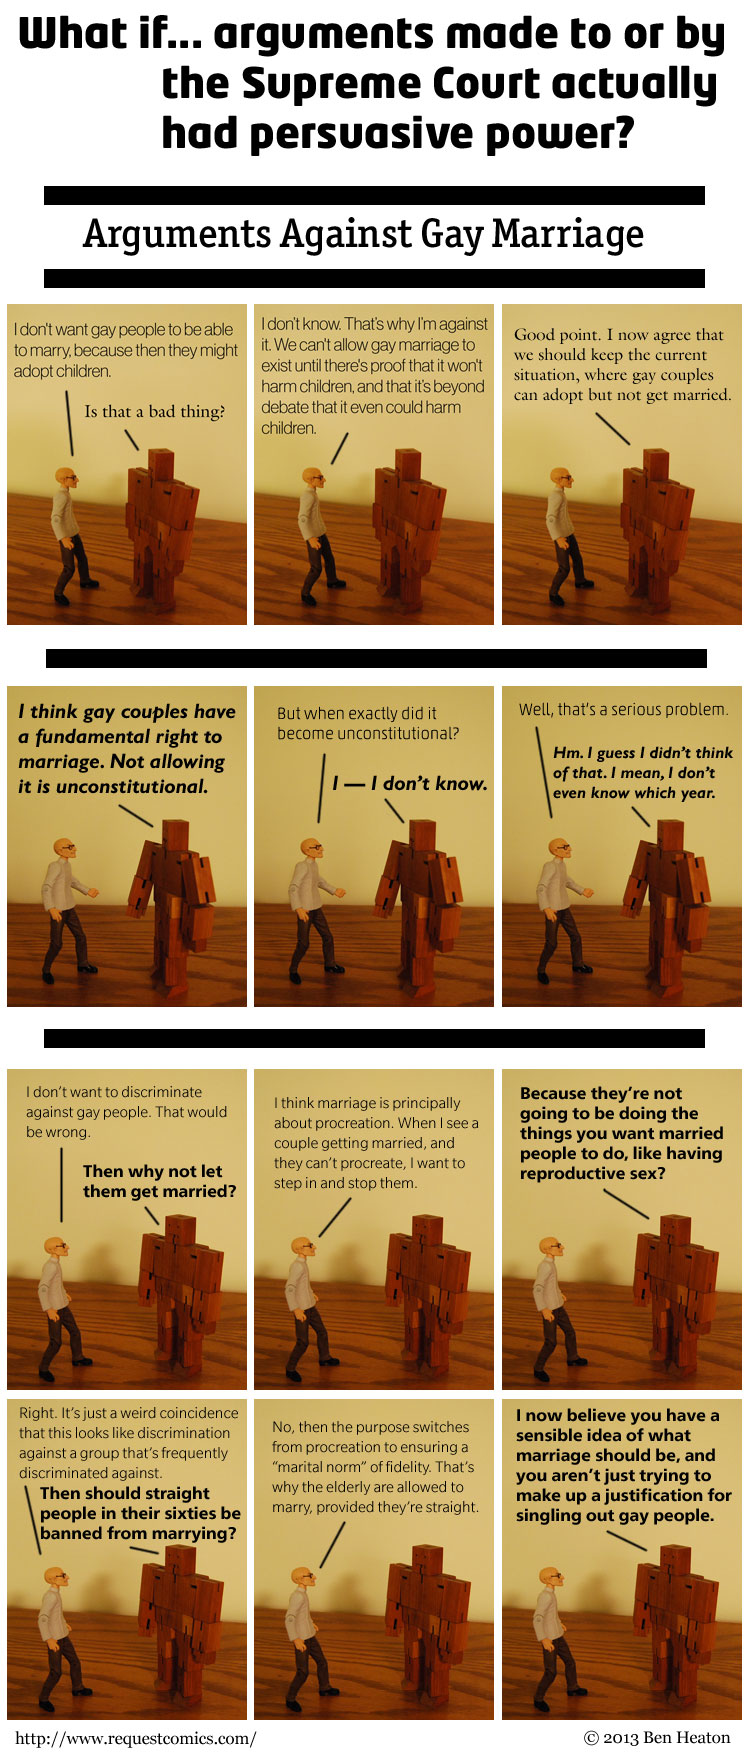 Arguments Against Gay Marriage comic